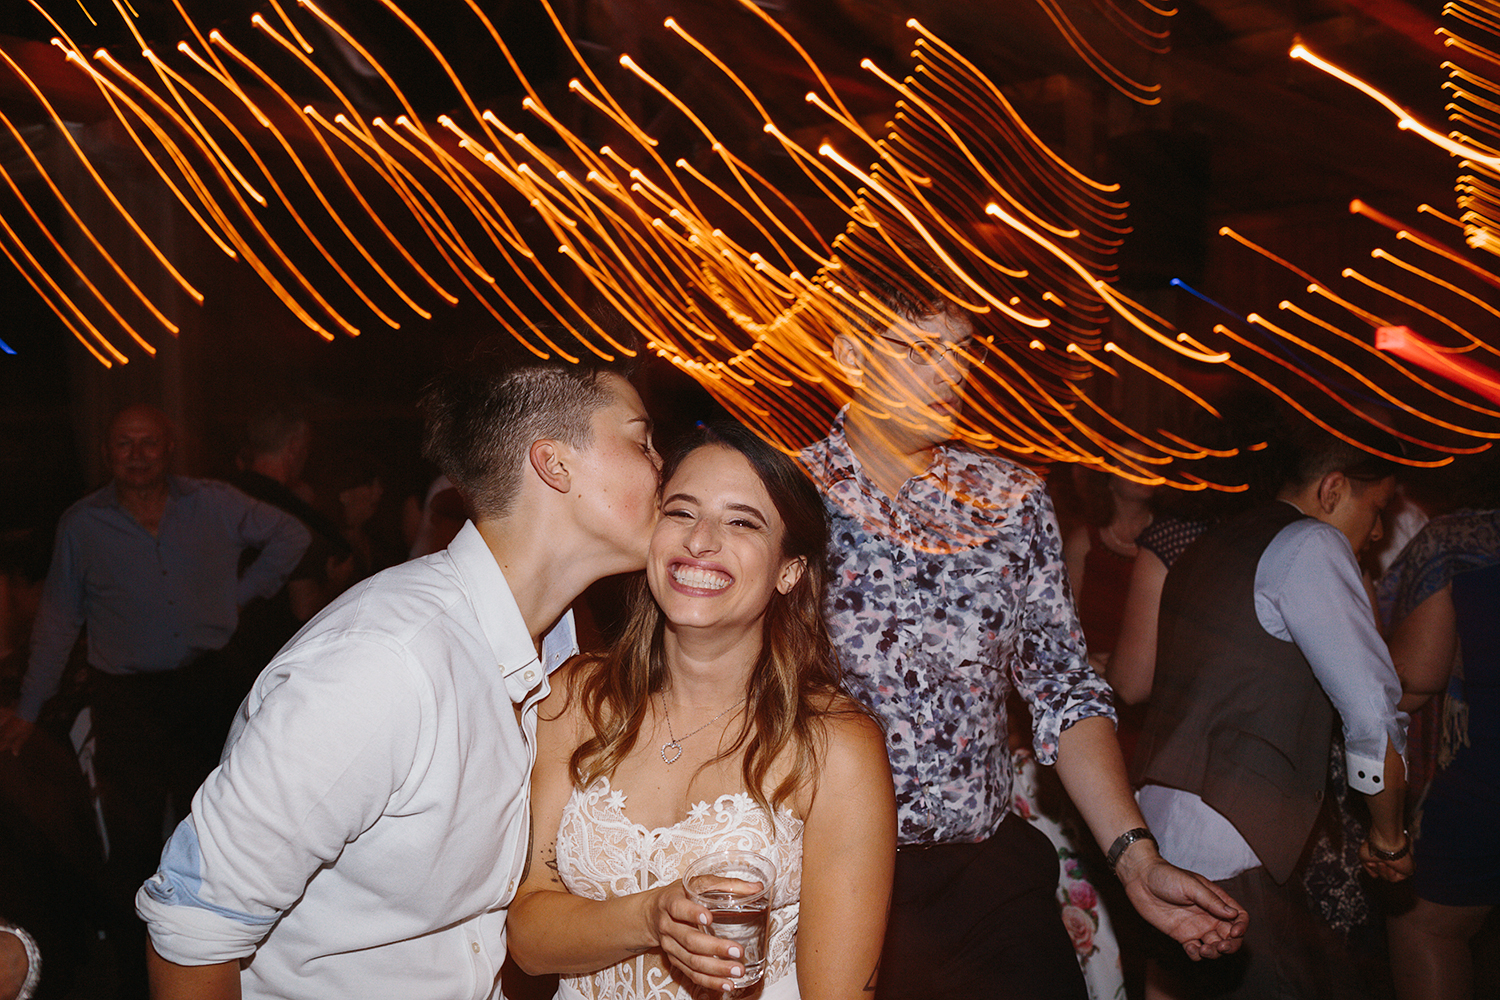 cambium-farms-ryanne-hollies-photography-gay-wedding-lgbtq-trendy-cool-badass-junebug-weddings-inspiration-wedding-reception-huge-party-candid-fun-moments-memories-friends-partying-kissing-love-is-love-bride-with-girlfriends.jpg